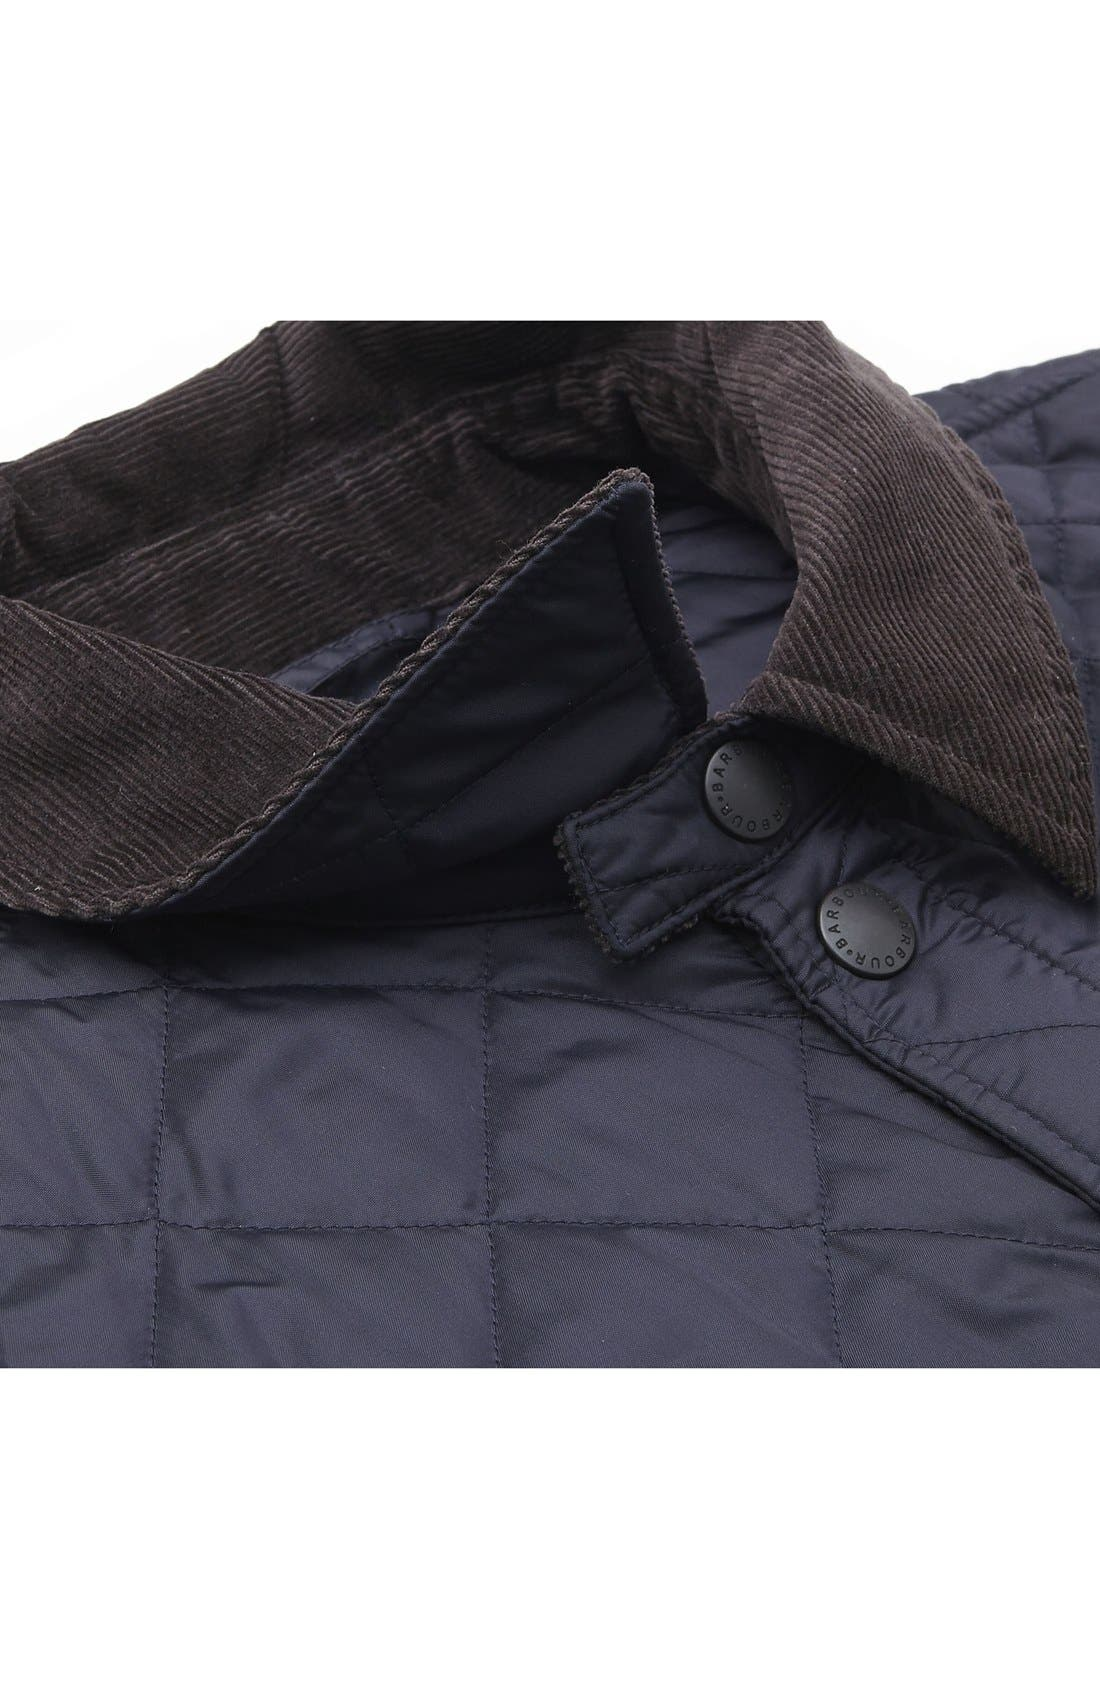 'Tinford' Regular Fit Quilted Jacket,                             Alternate thumbnail 7, color,                             Navy